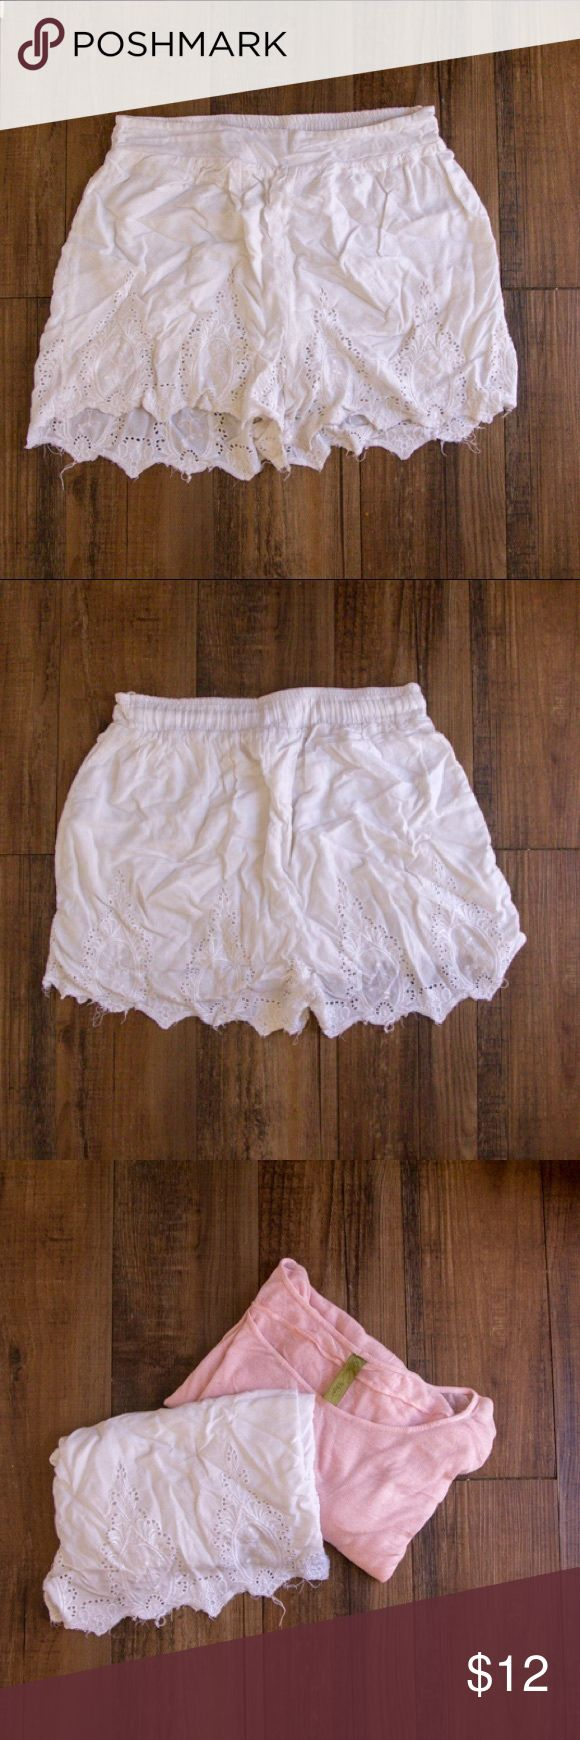 Lace Trim Shorts White prairie shorts with a floral pattern on the bottom. These are incredibly comfortable and cute! Getting rid of only because we are downsizing our closet due to our small space in the camper. Shorts